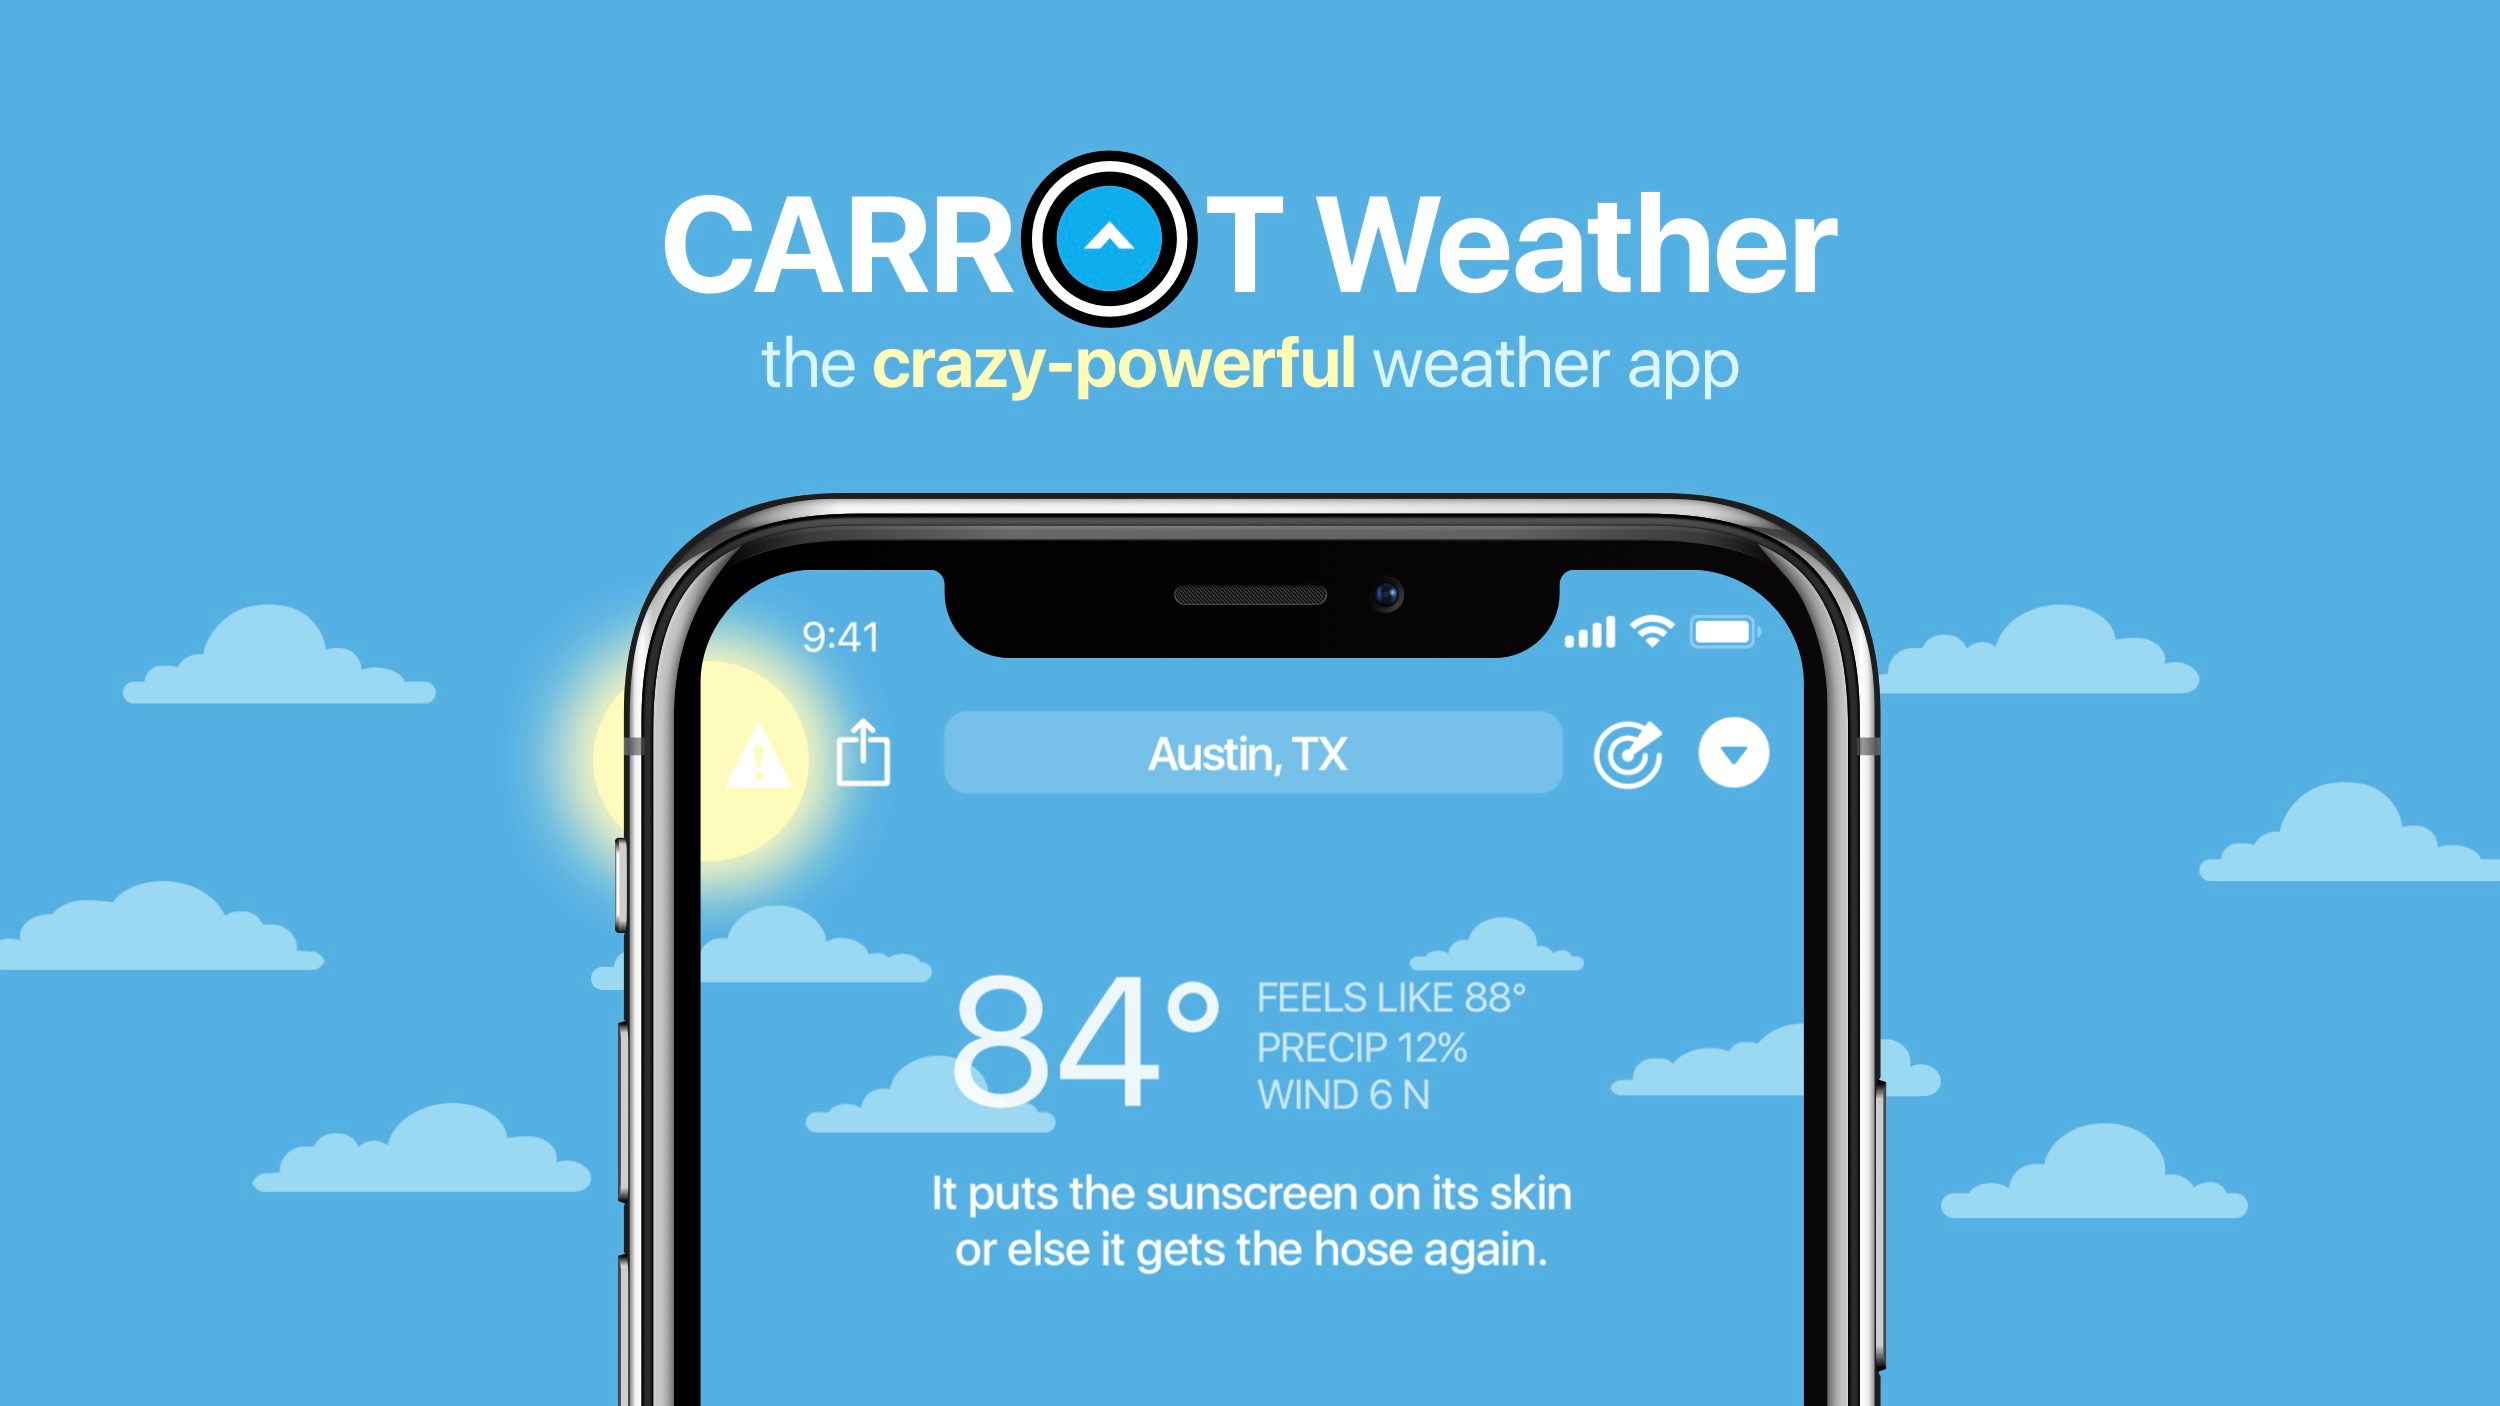 carrot weather adds support for apple watch series 4 siri shortcuts and siri watch face in latest update